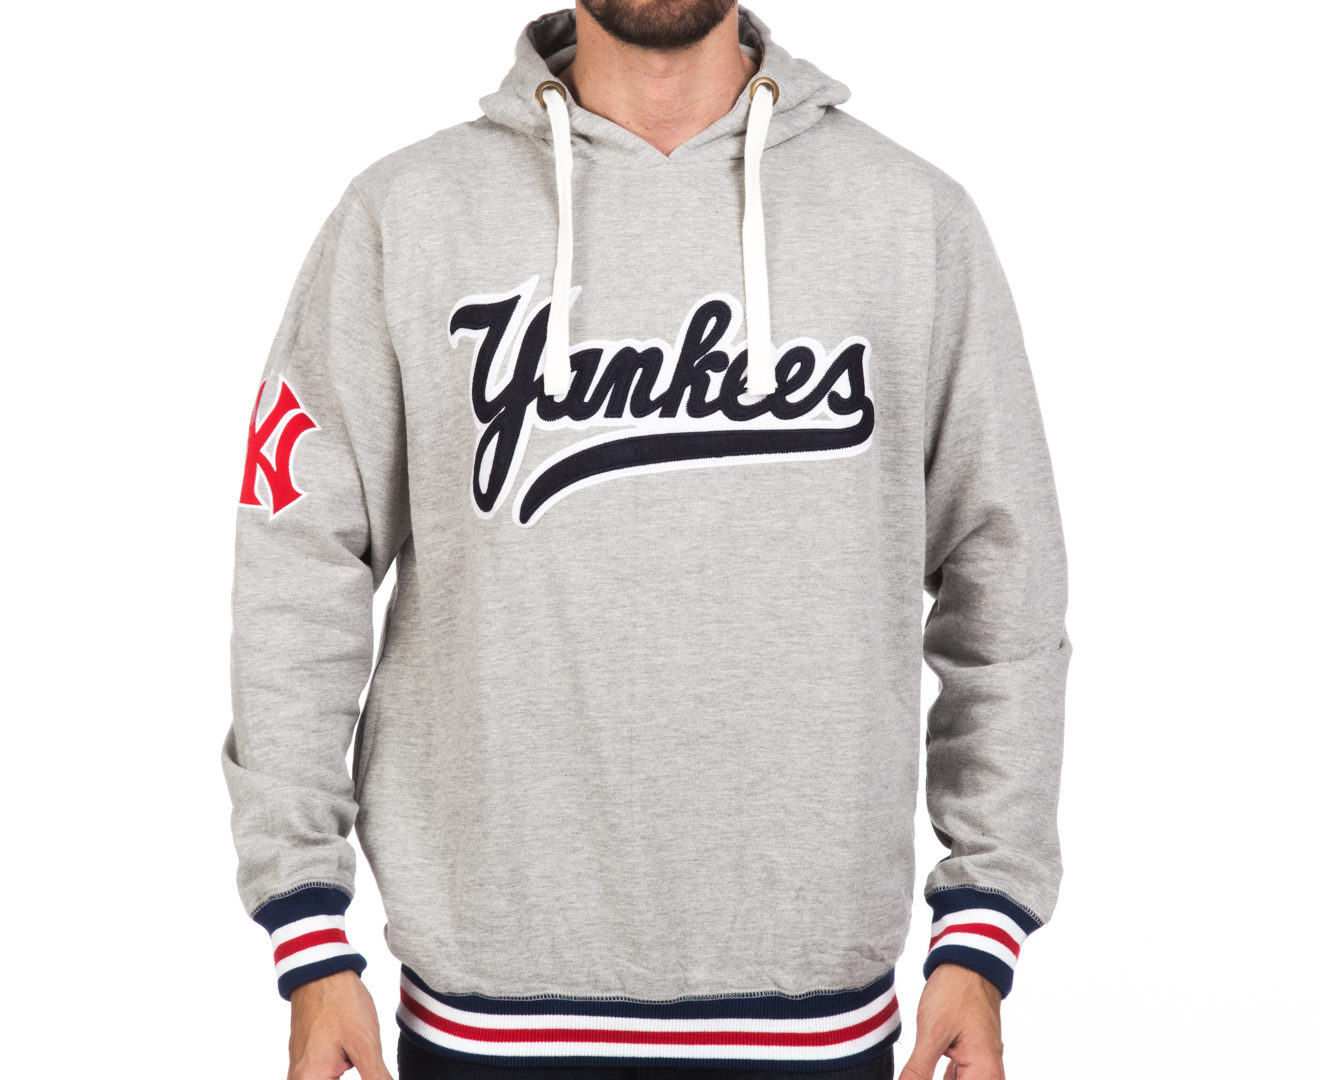 new style 7986d 85c9b Majestic Men's New York Yankees Hoodie - Grey